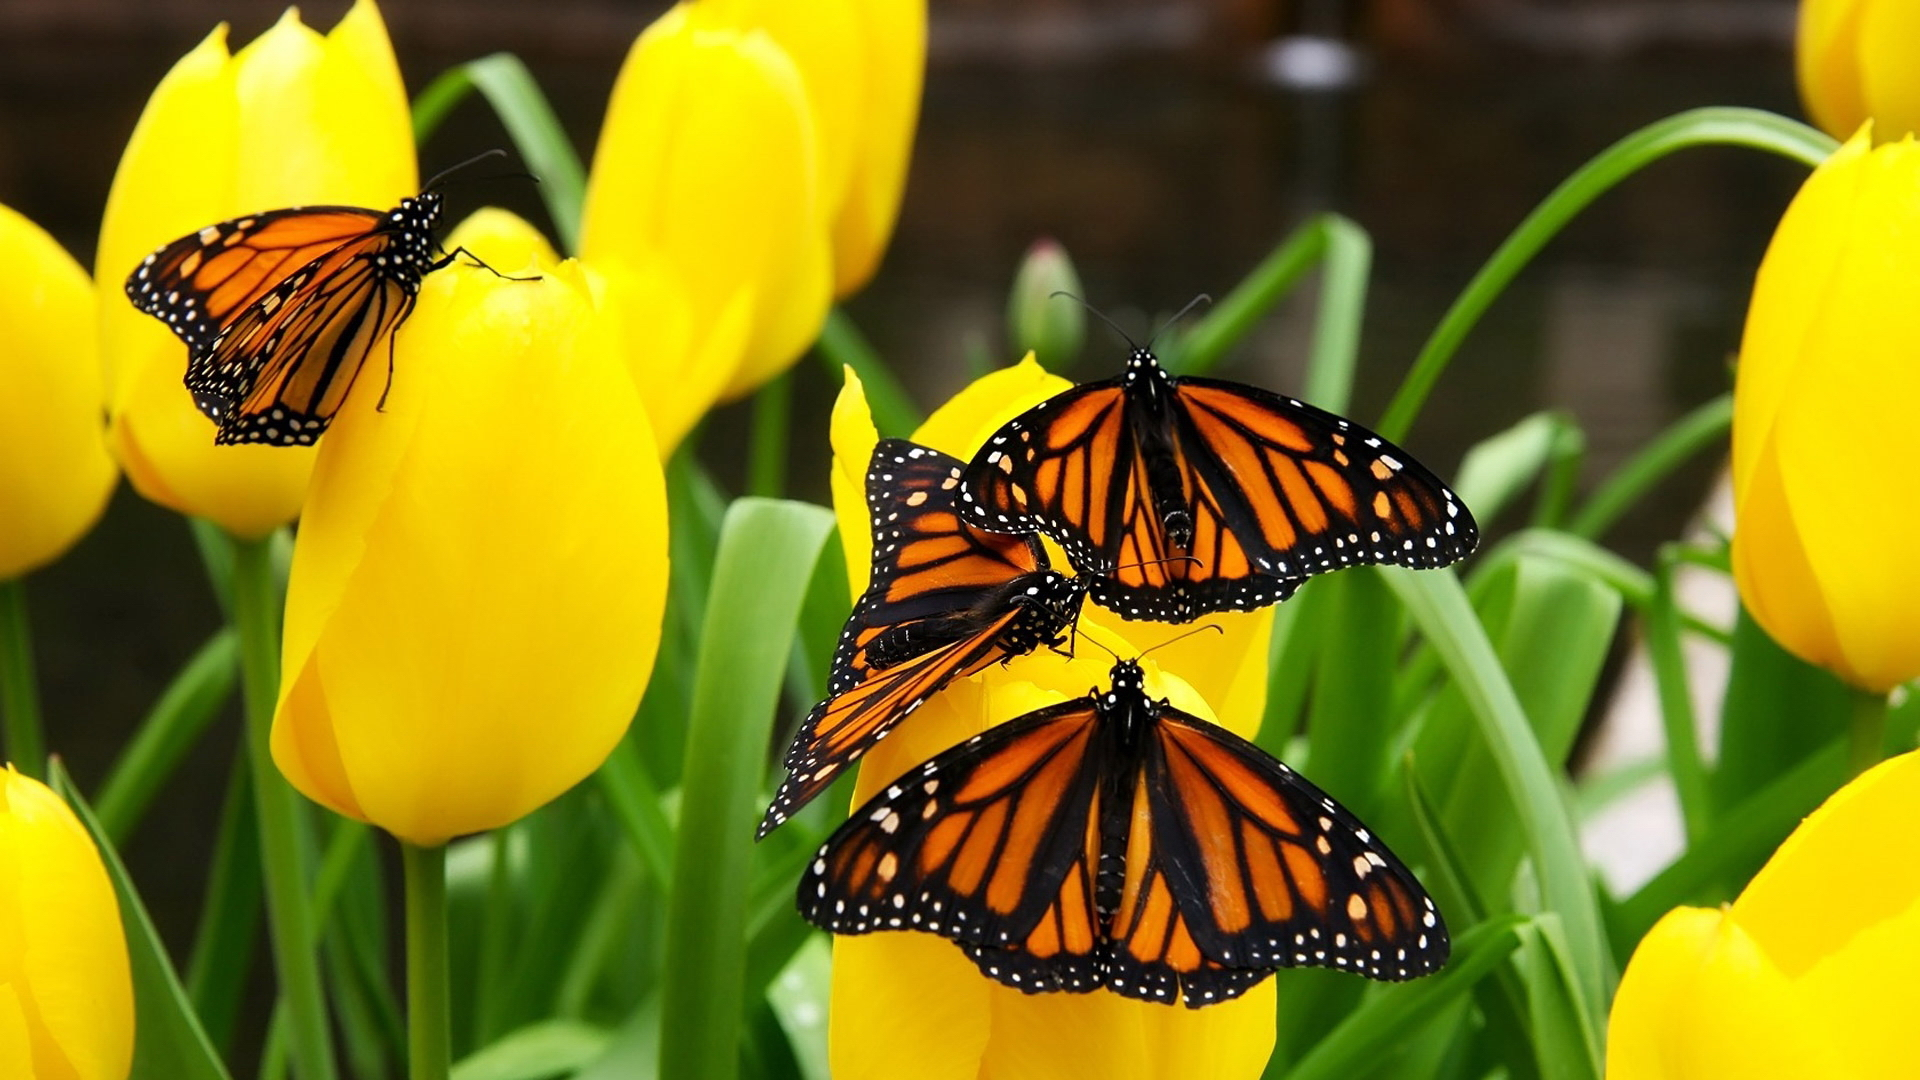 Image: Butterfly, yellow, tulips, flowers